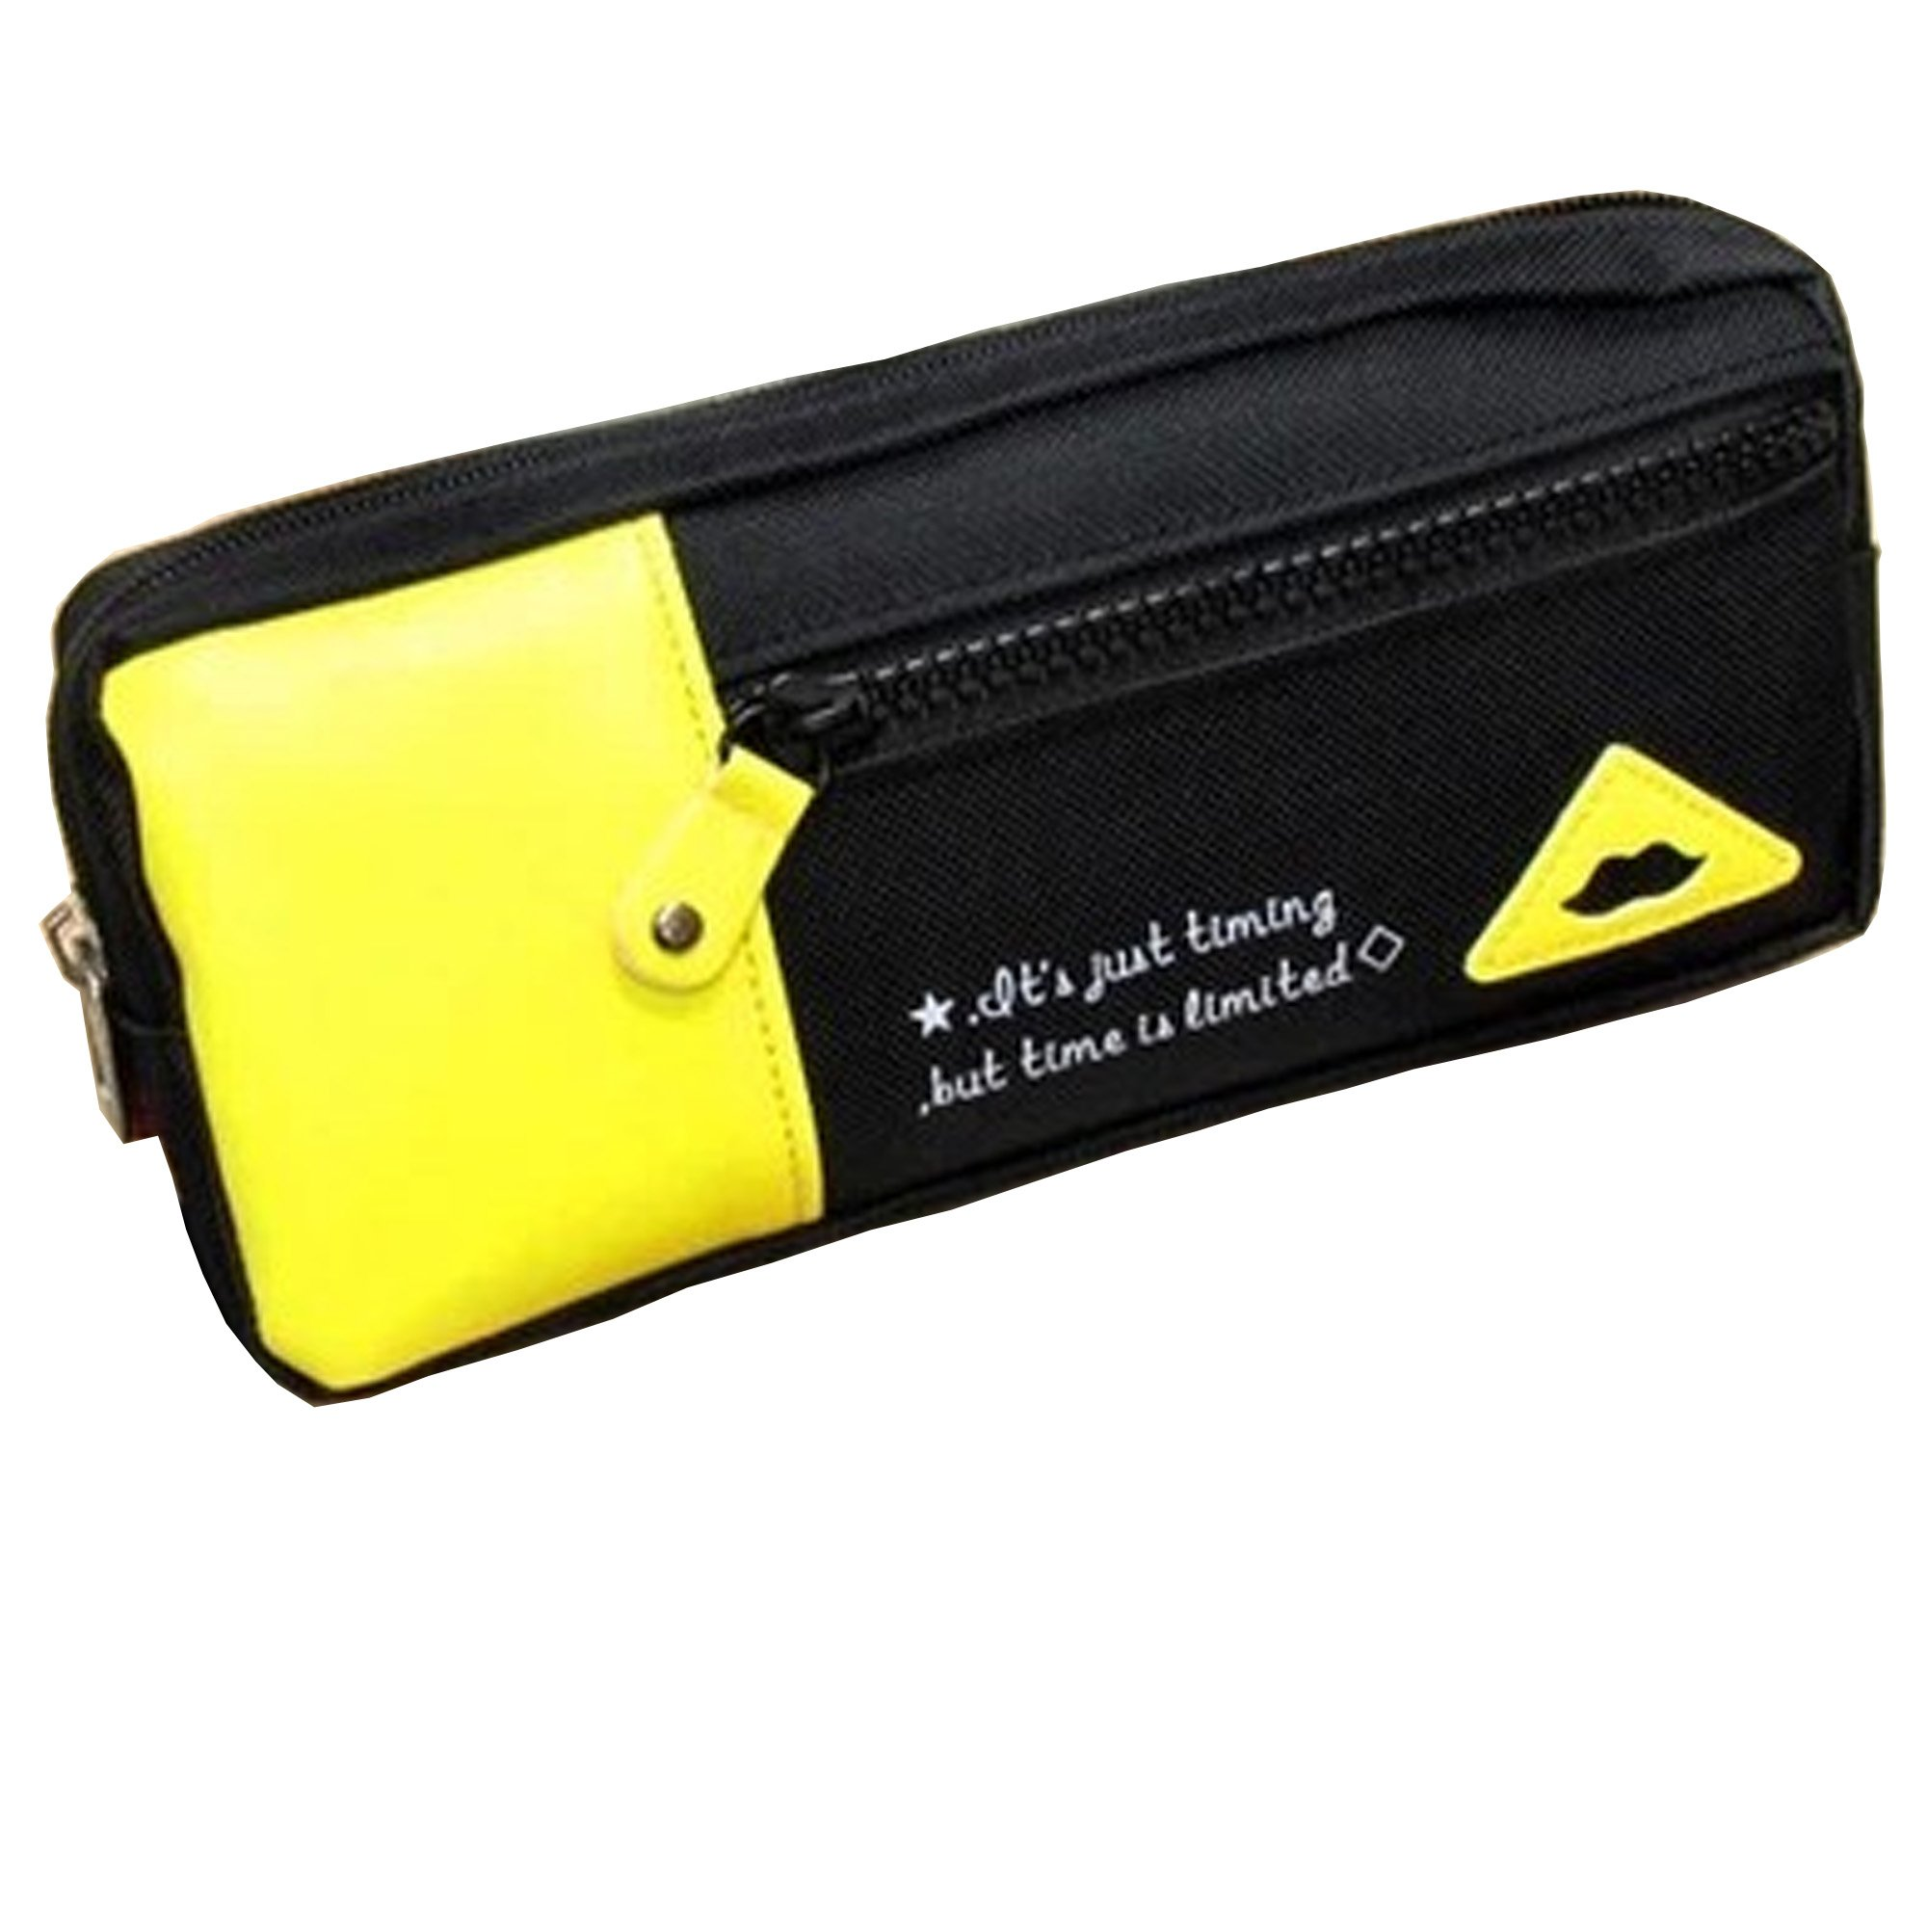 Large Capacity Docking Pen case Pouch Pencil Pen Holder Separation Colorful Stationery Storage (Yellow)